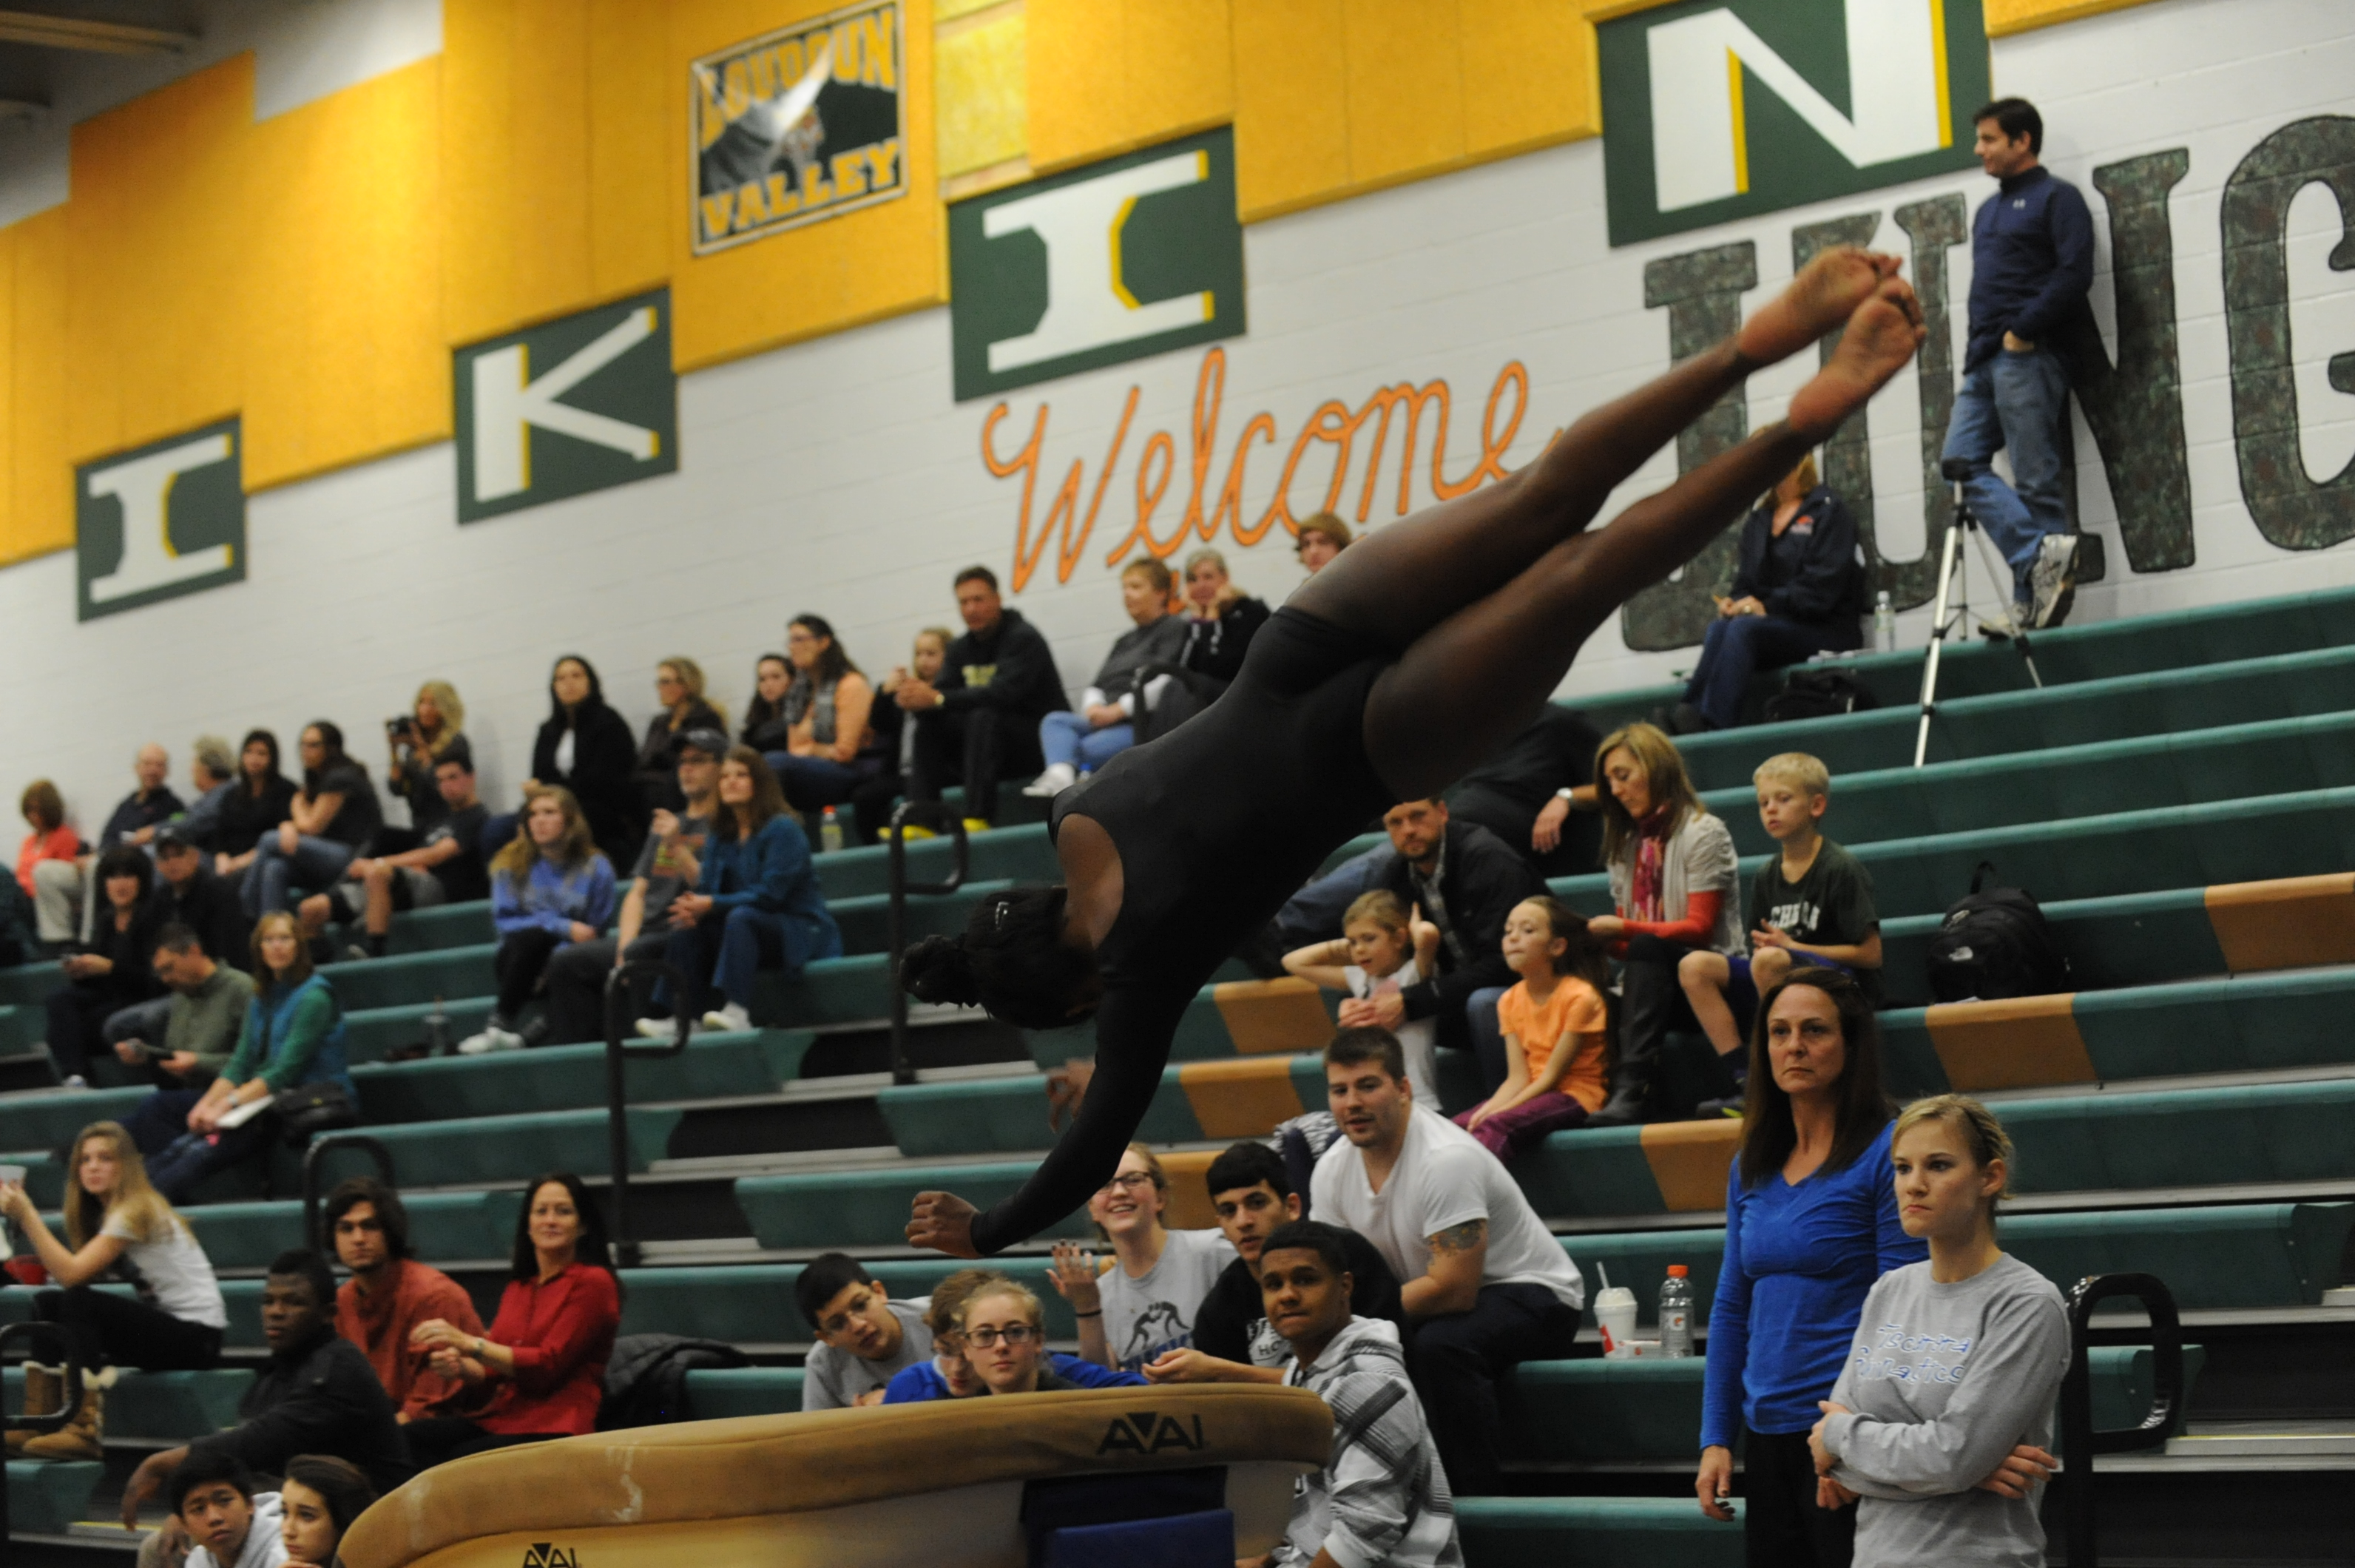 Freshman Julia Thoppil's performance on the vault earned her 2nd place in the event and helped her place 2nd all-around. Photo courtesy of Lifetouch